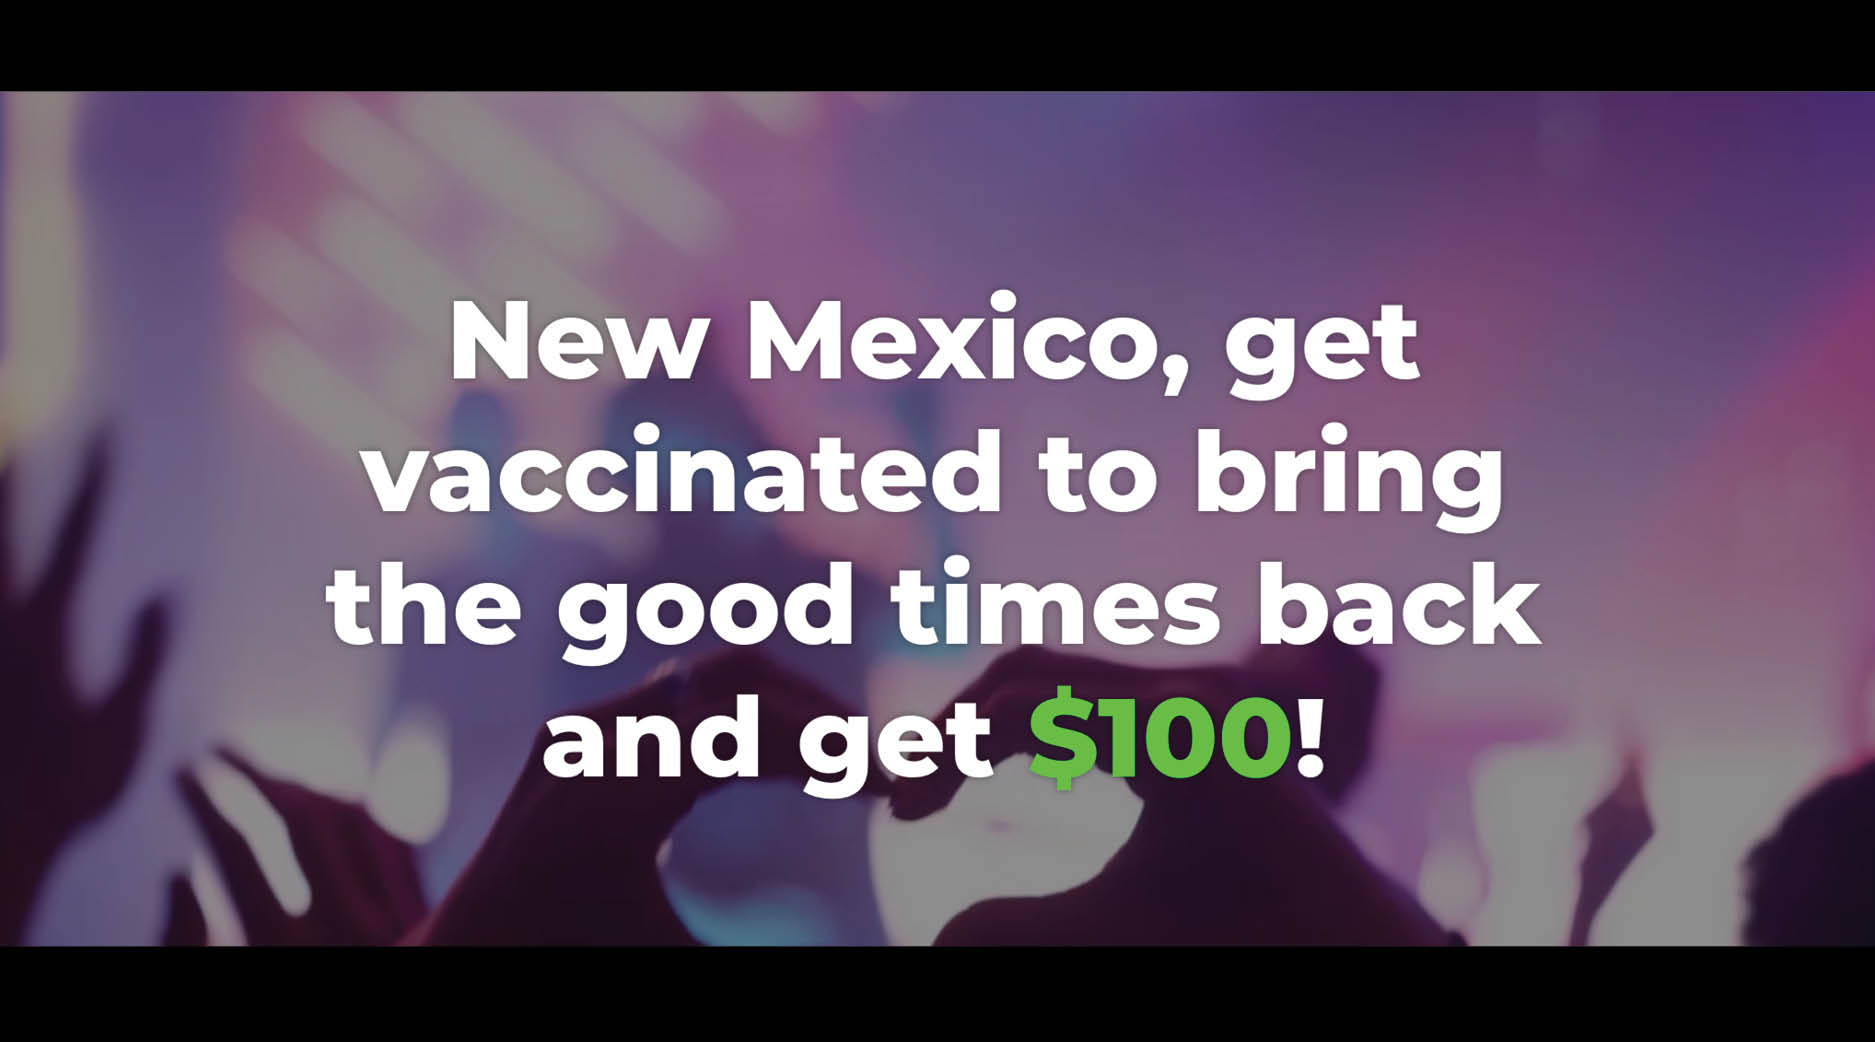 New Mexico, get vaccinated to bring the good times back and get $100!